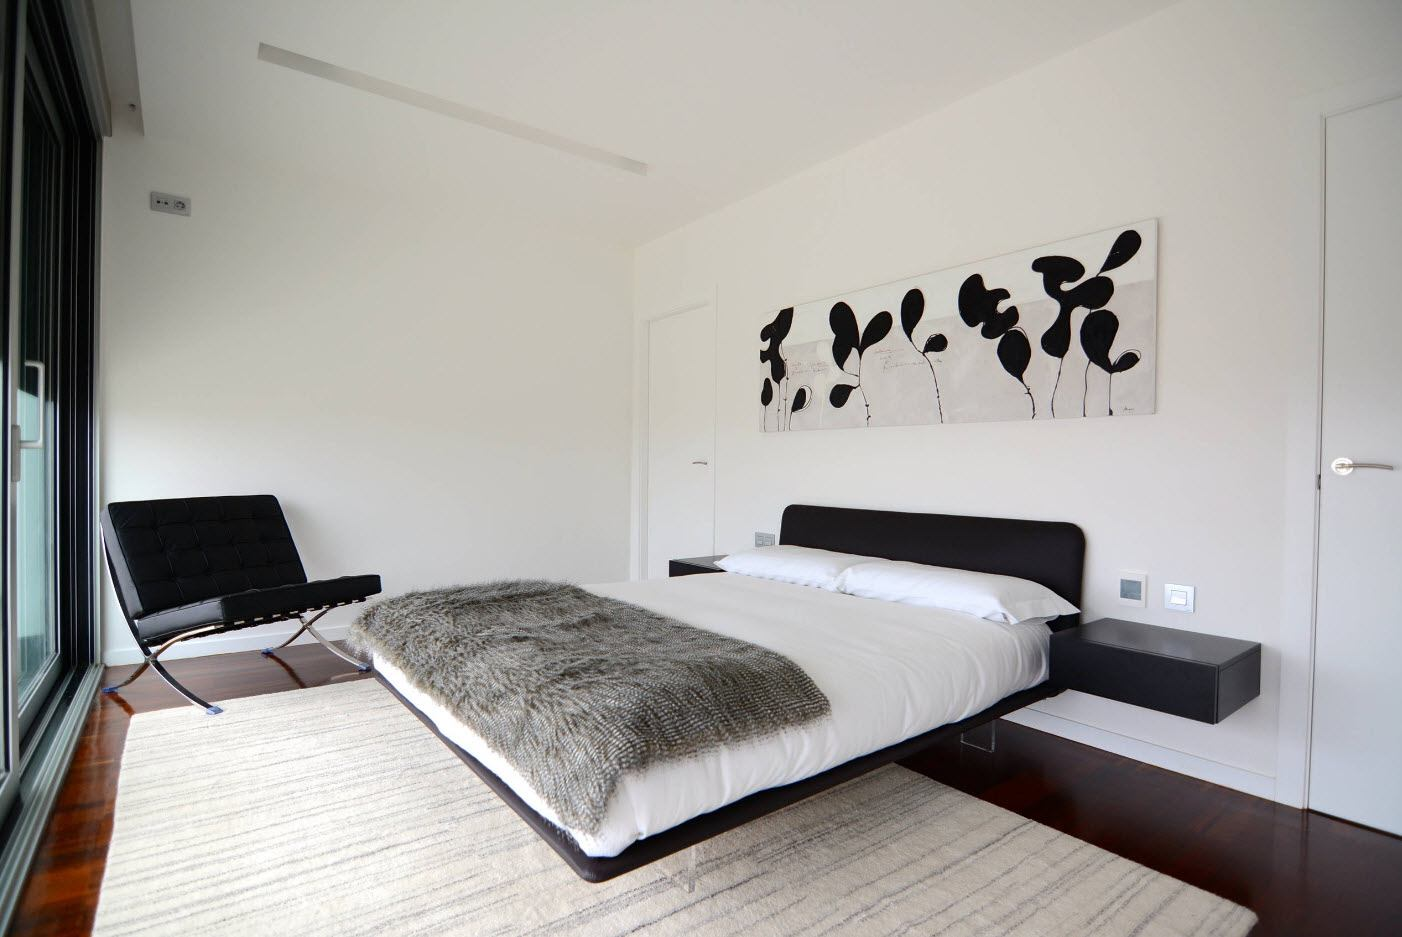 Hovering platform bed in the light designed bedroom with expression at the headboard